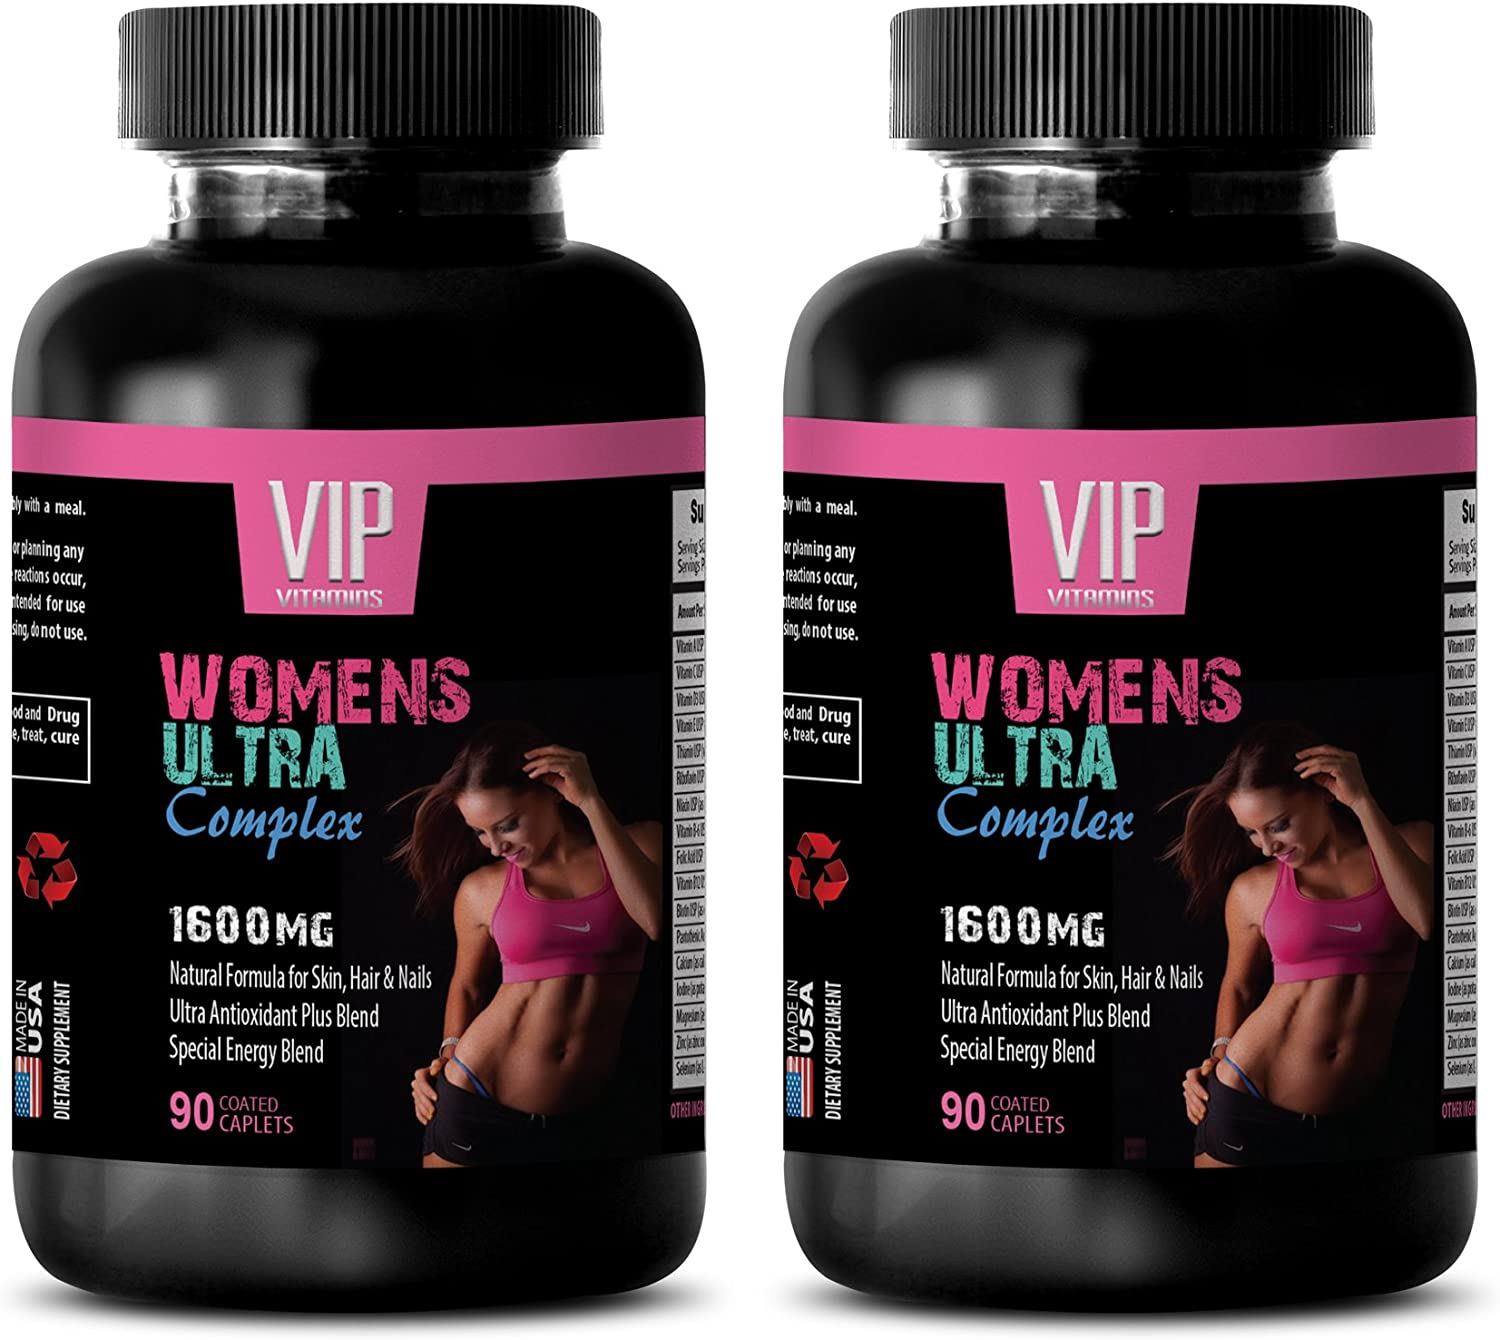 Menopause Opening large release sale Supplements for Finally popular brand Mood - MG 1600 Ultra Women's Complex